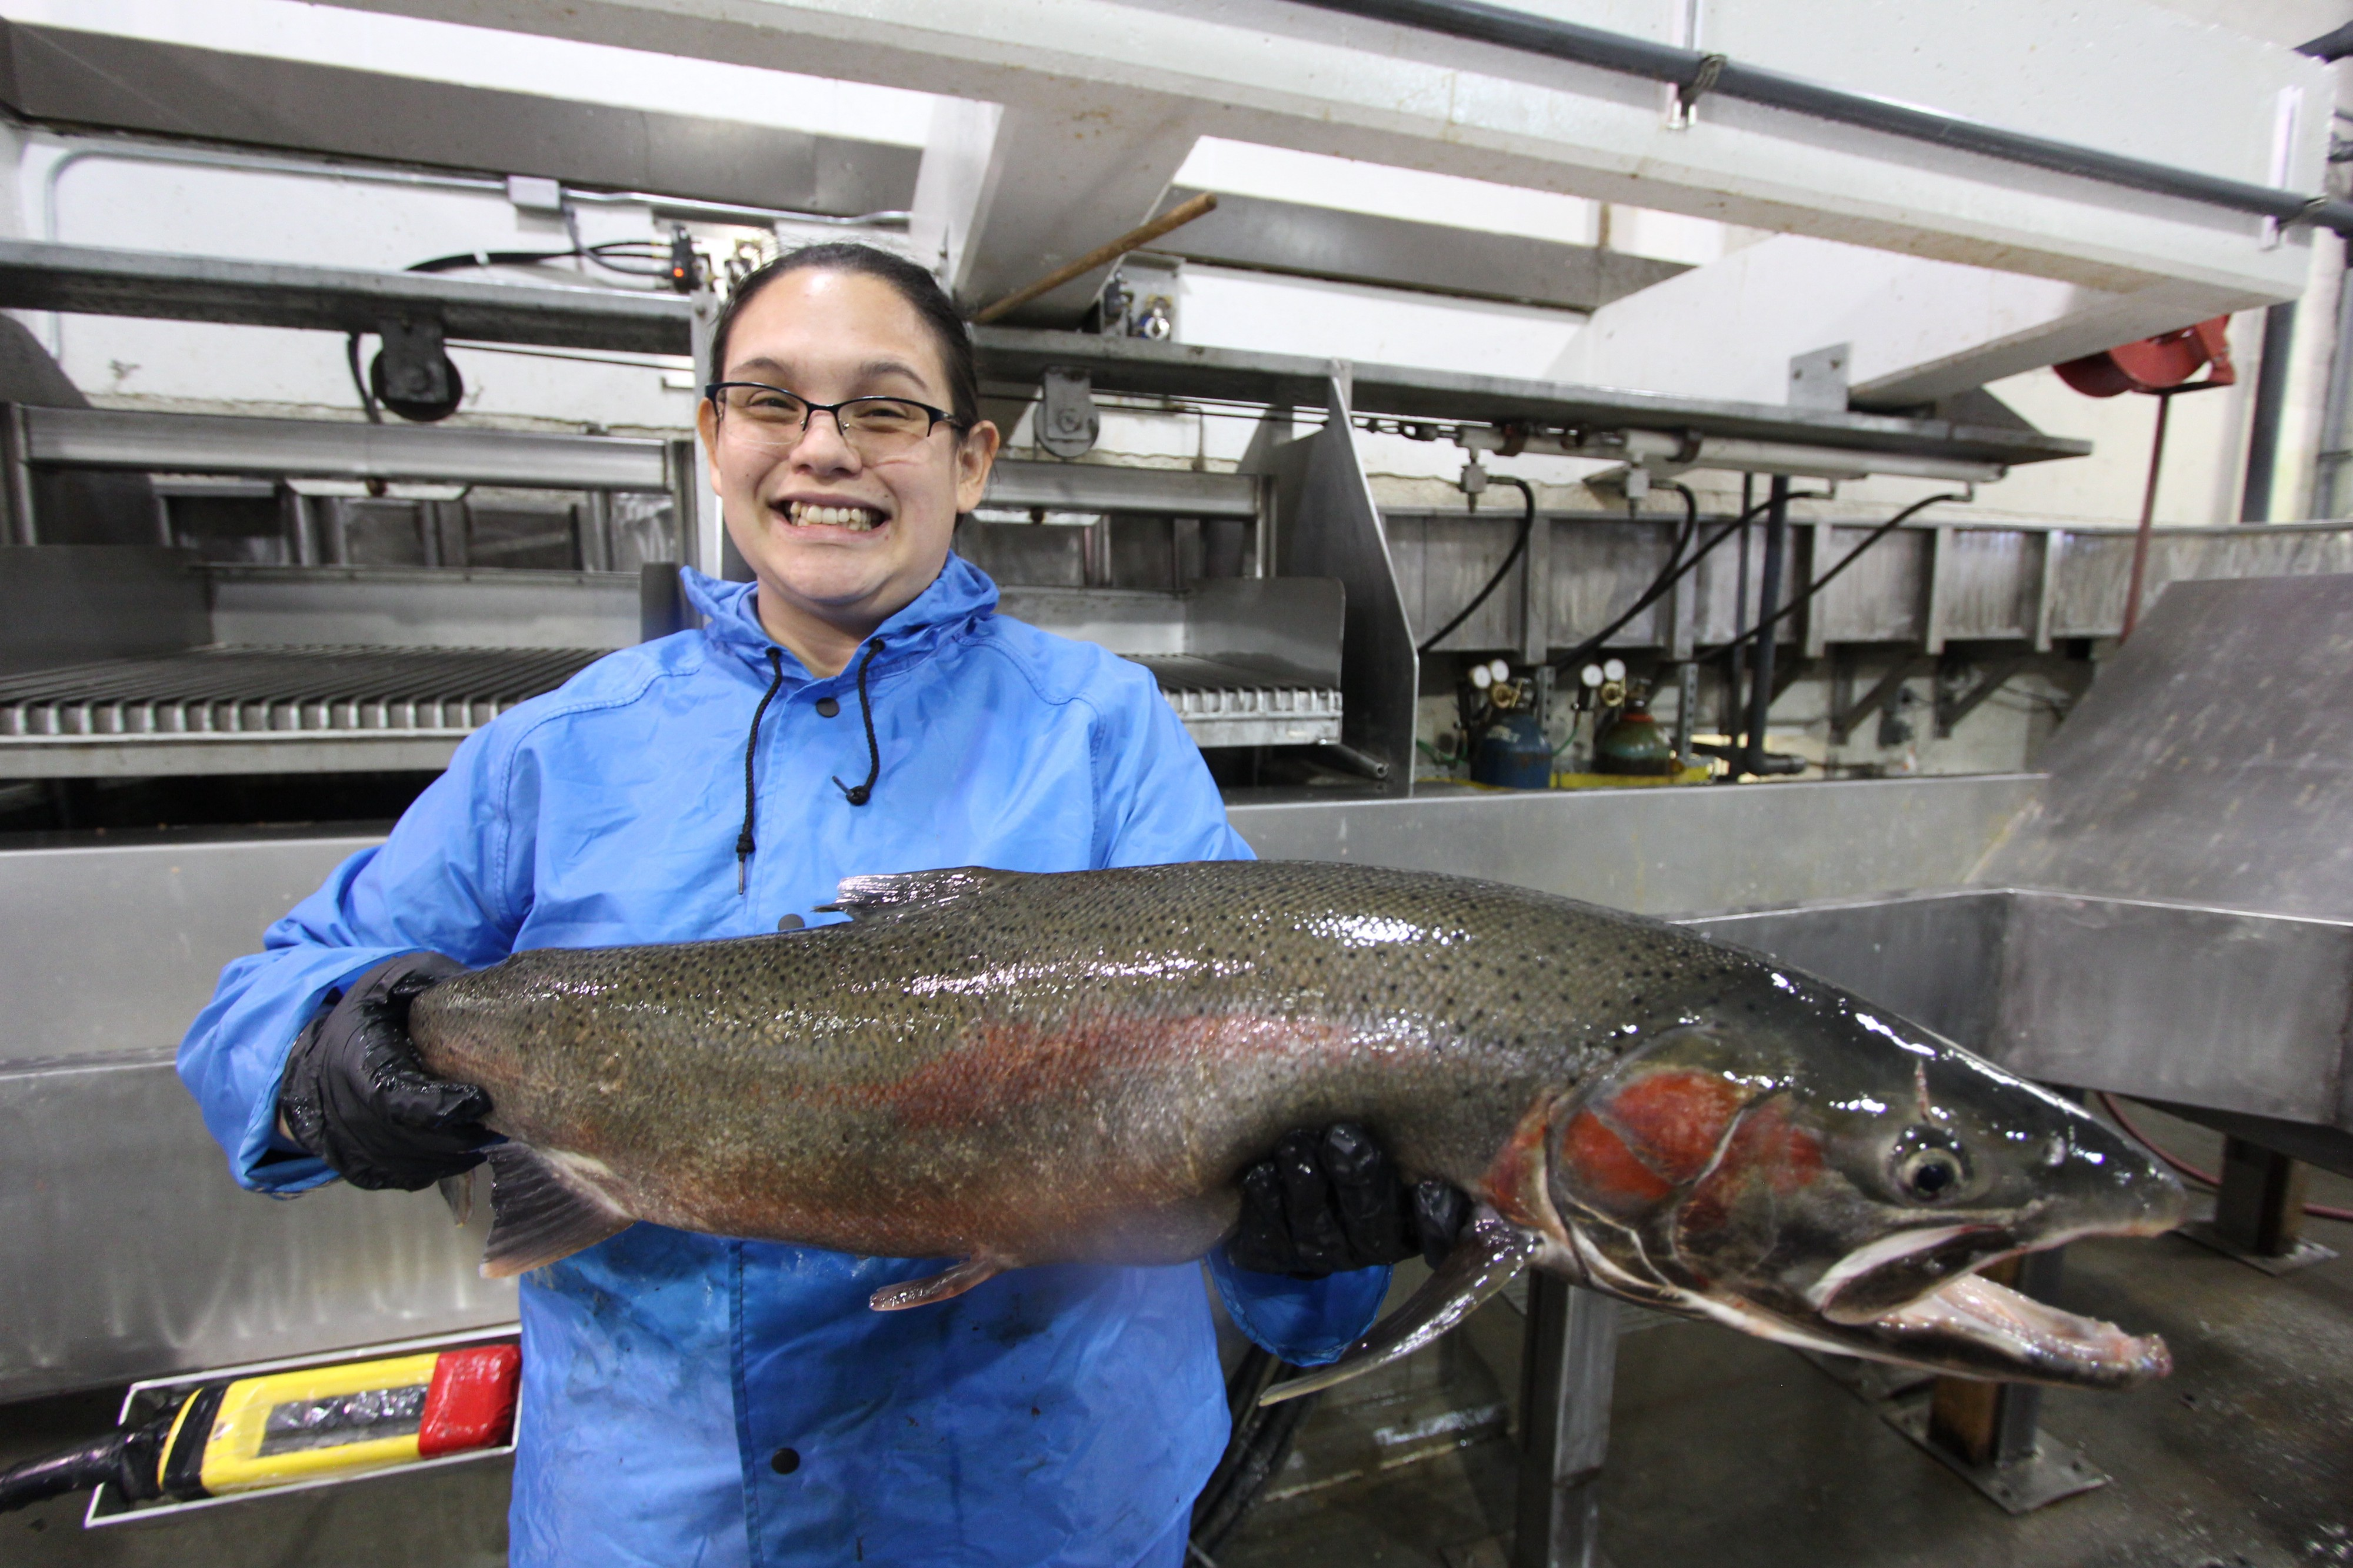 AmeriCorps member Kylee shows off a smile and a huge salmon